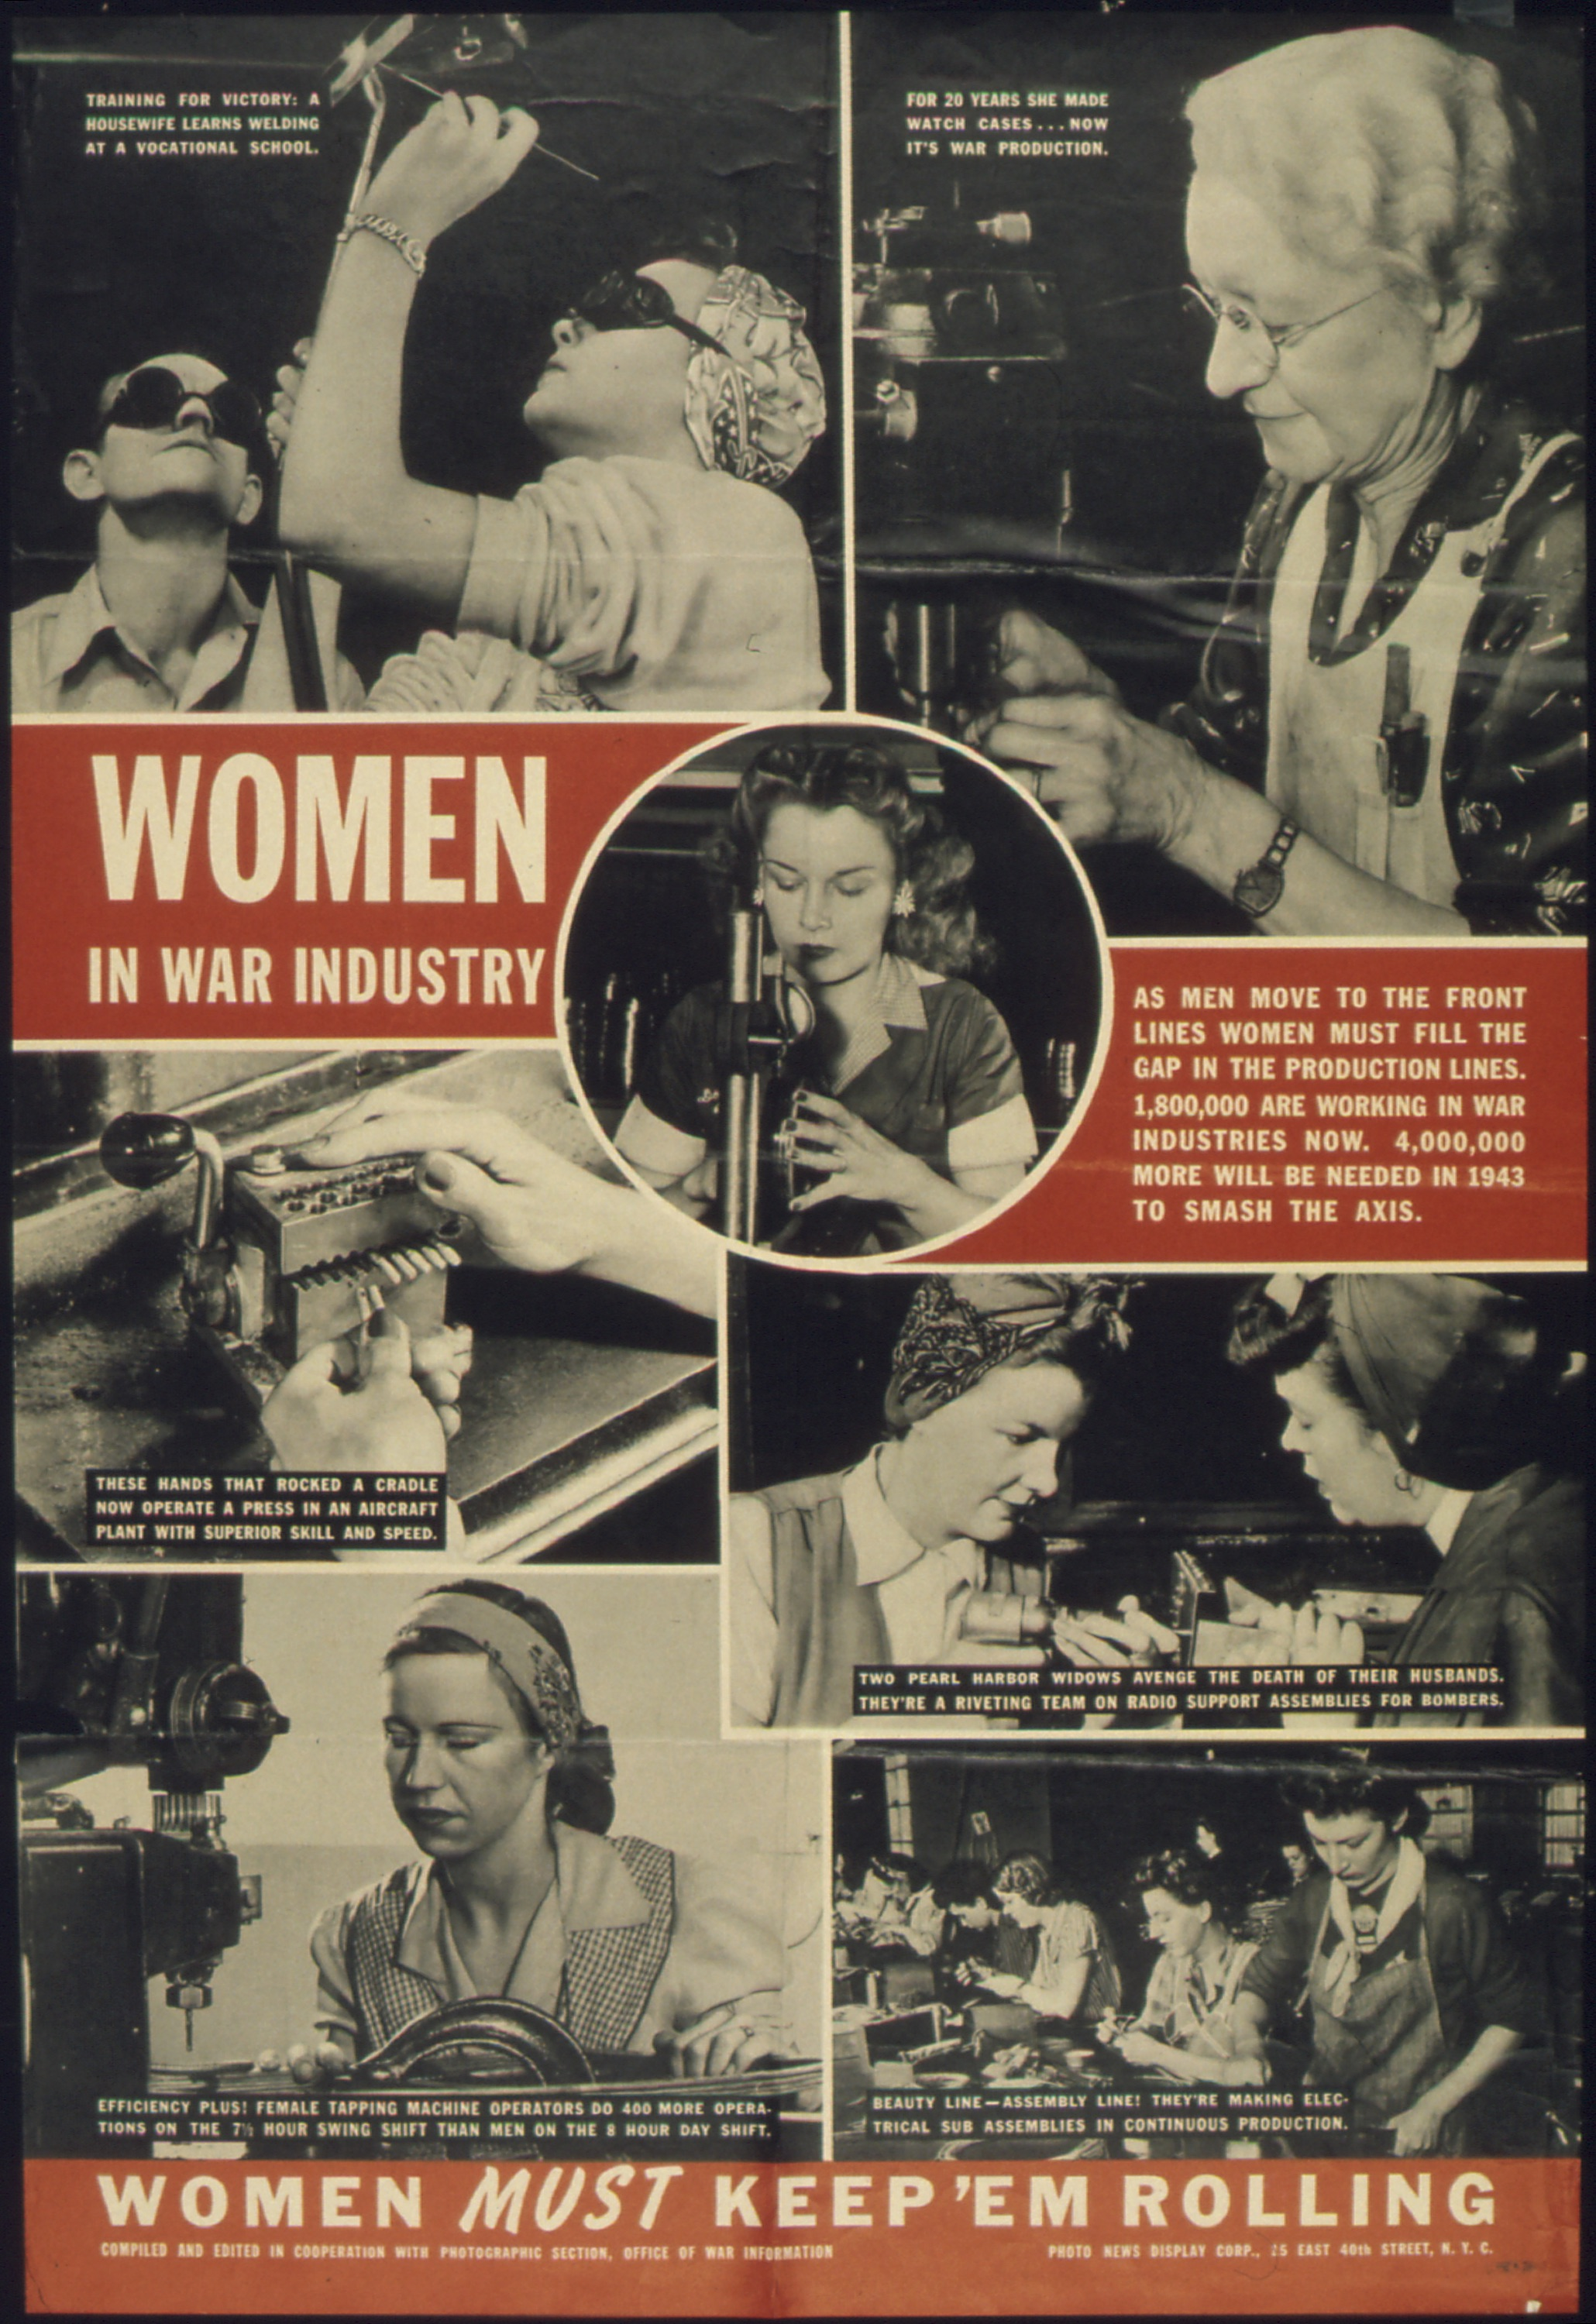 an analysis of the role of women during the world war two American women played important roles during world war ii, both at home and   served as radio operators, analyzed photographs, flew military aircraft across.